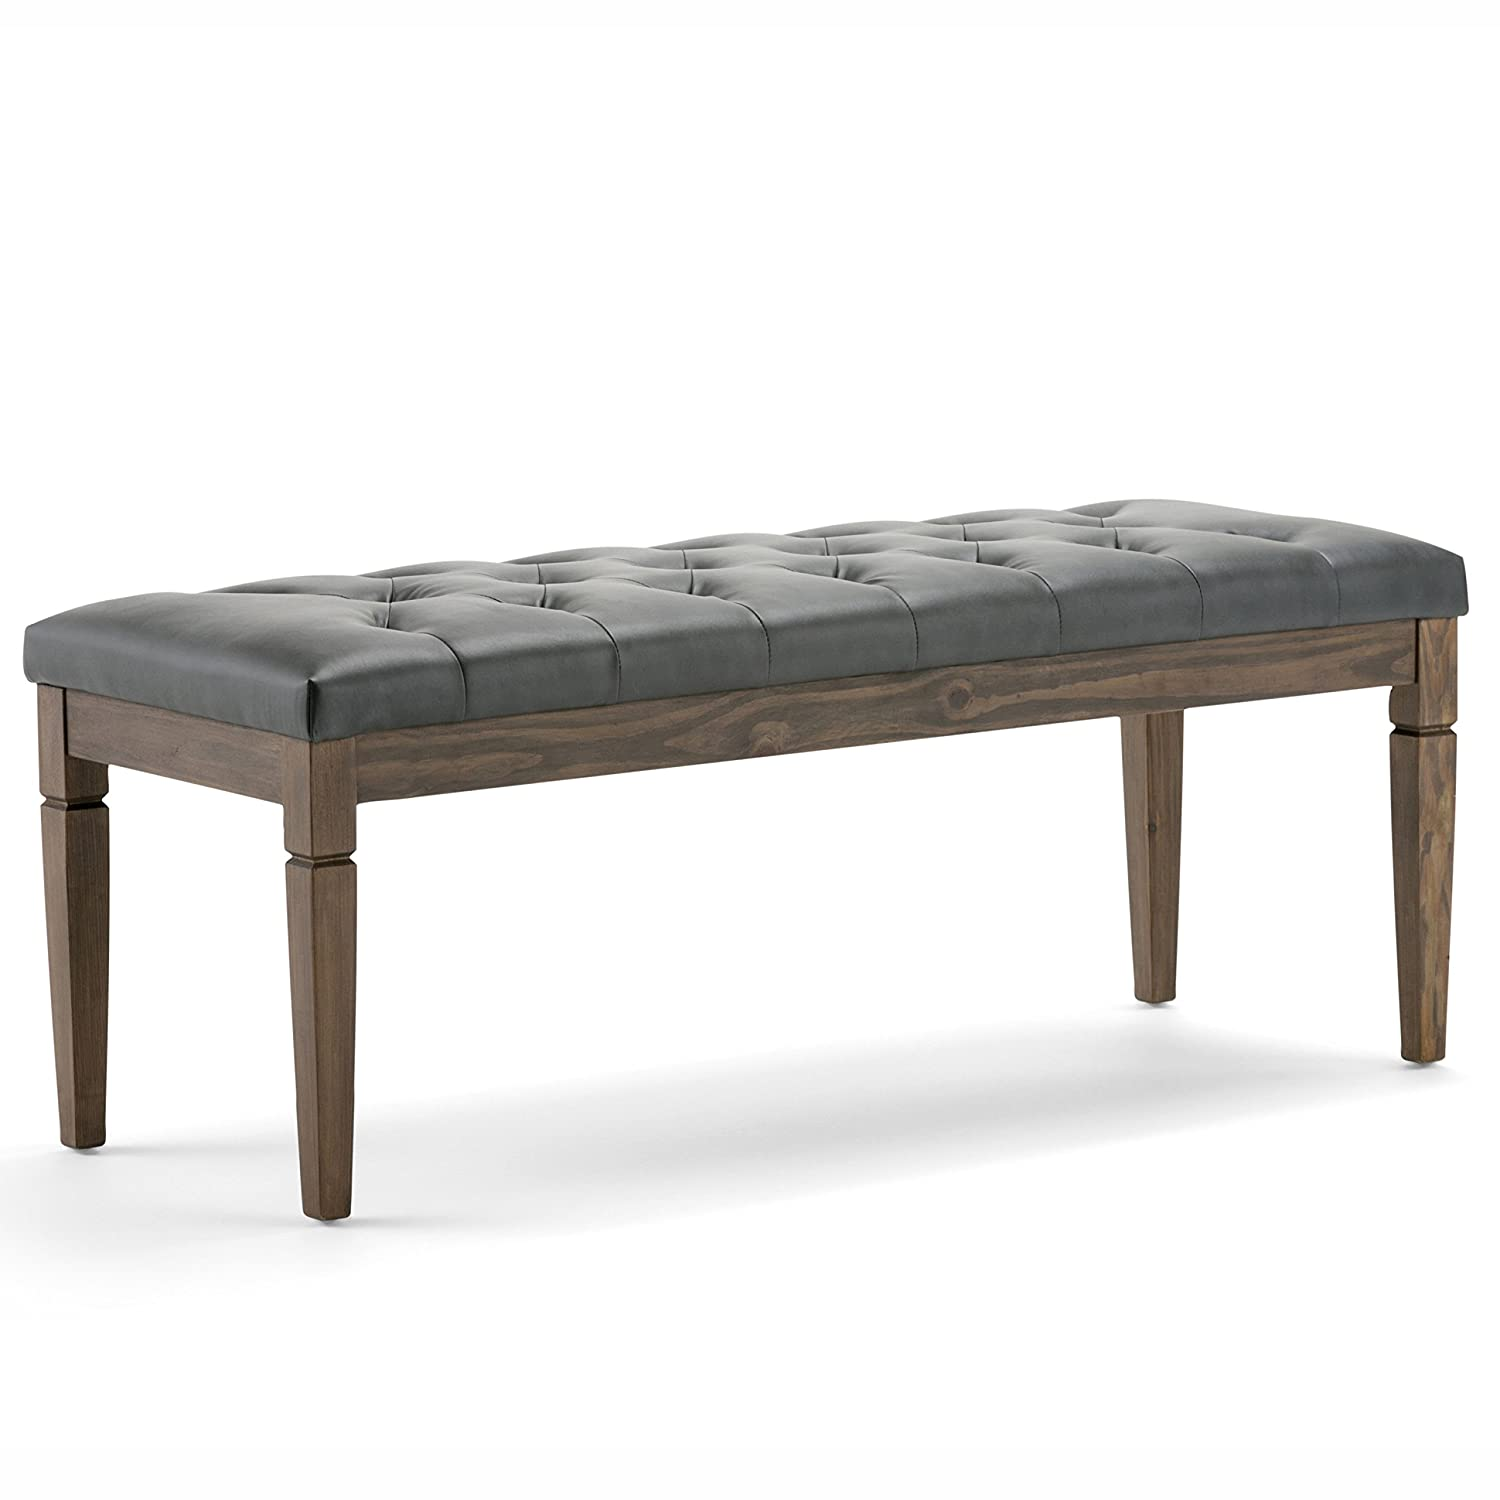 Simpli Home Waverly Tufted Ottoman Bench, Slate Grey